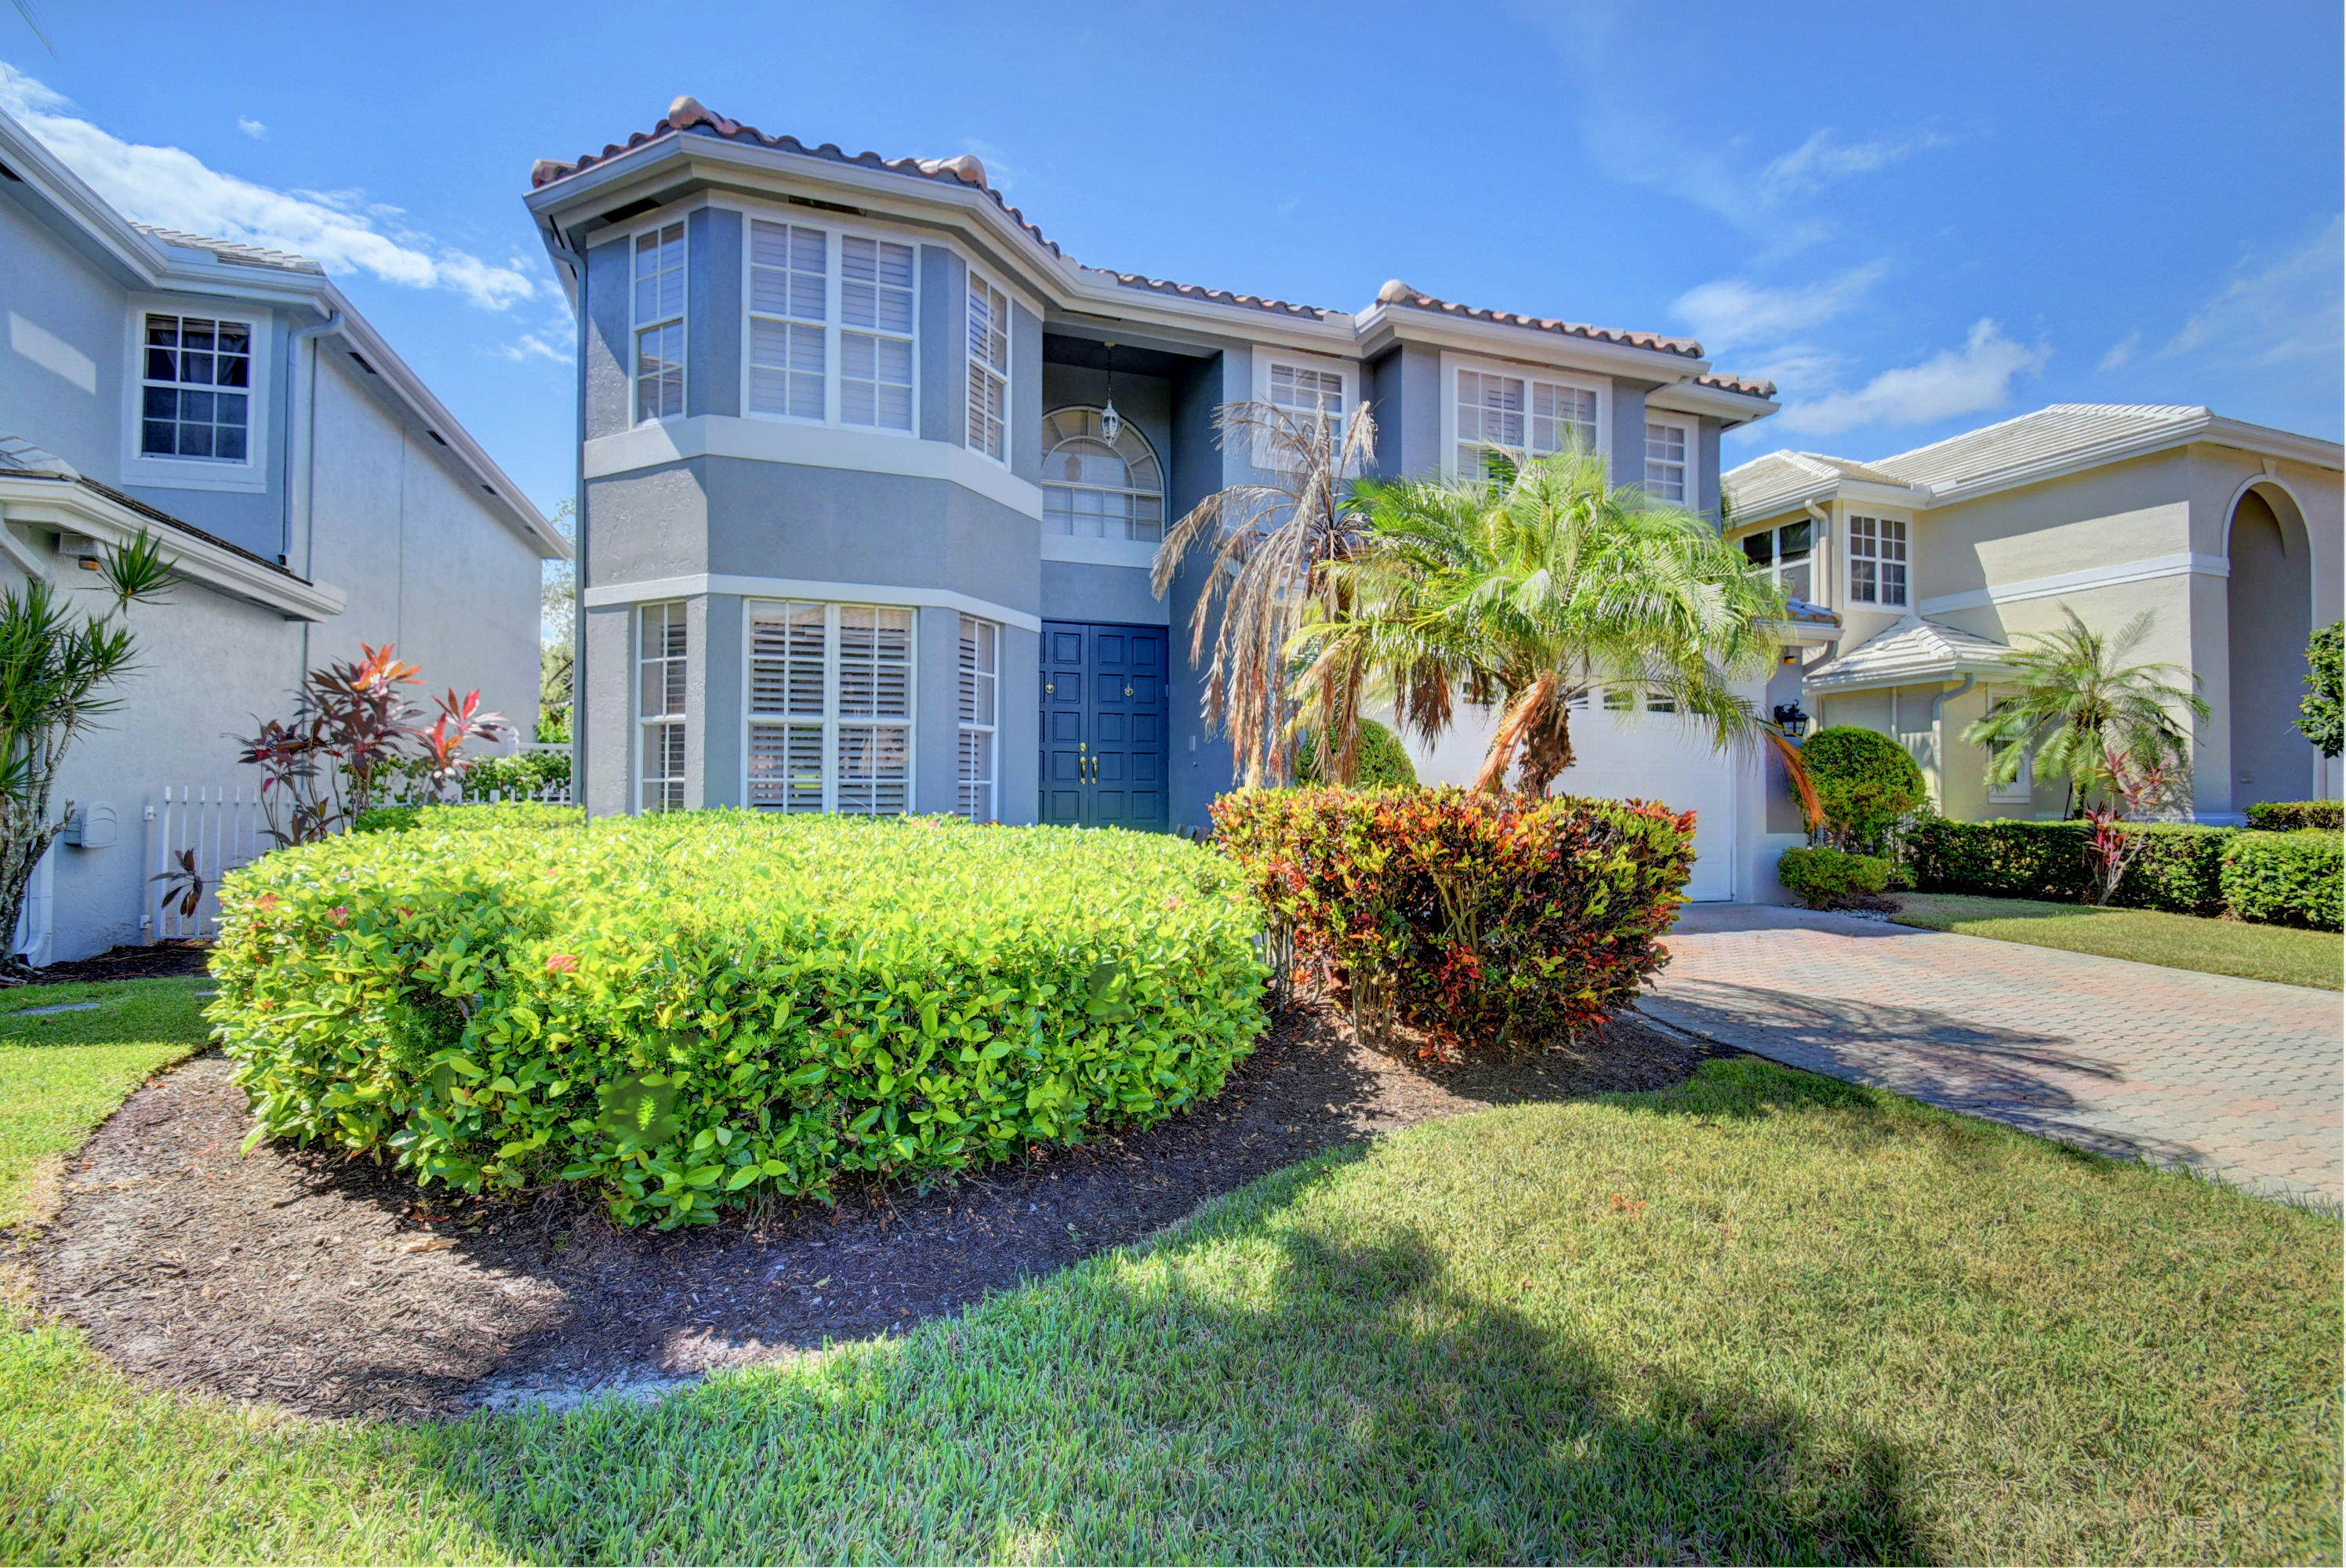 4145 NW 58th Lane, Boca Raton, Florida